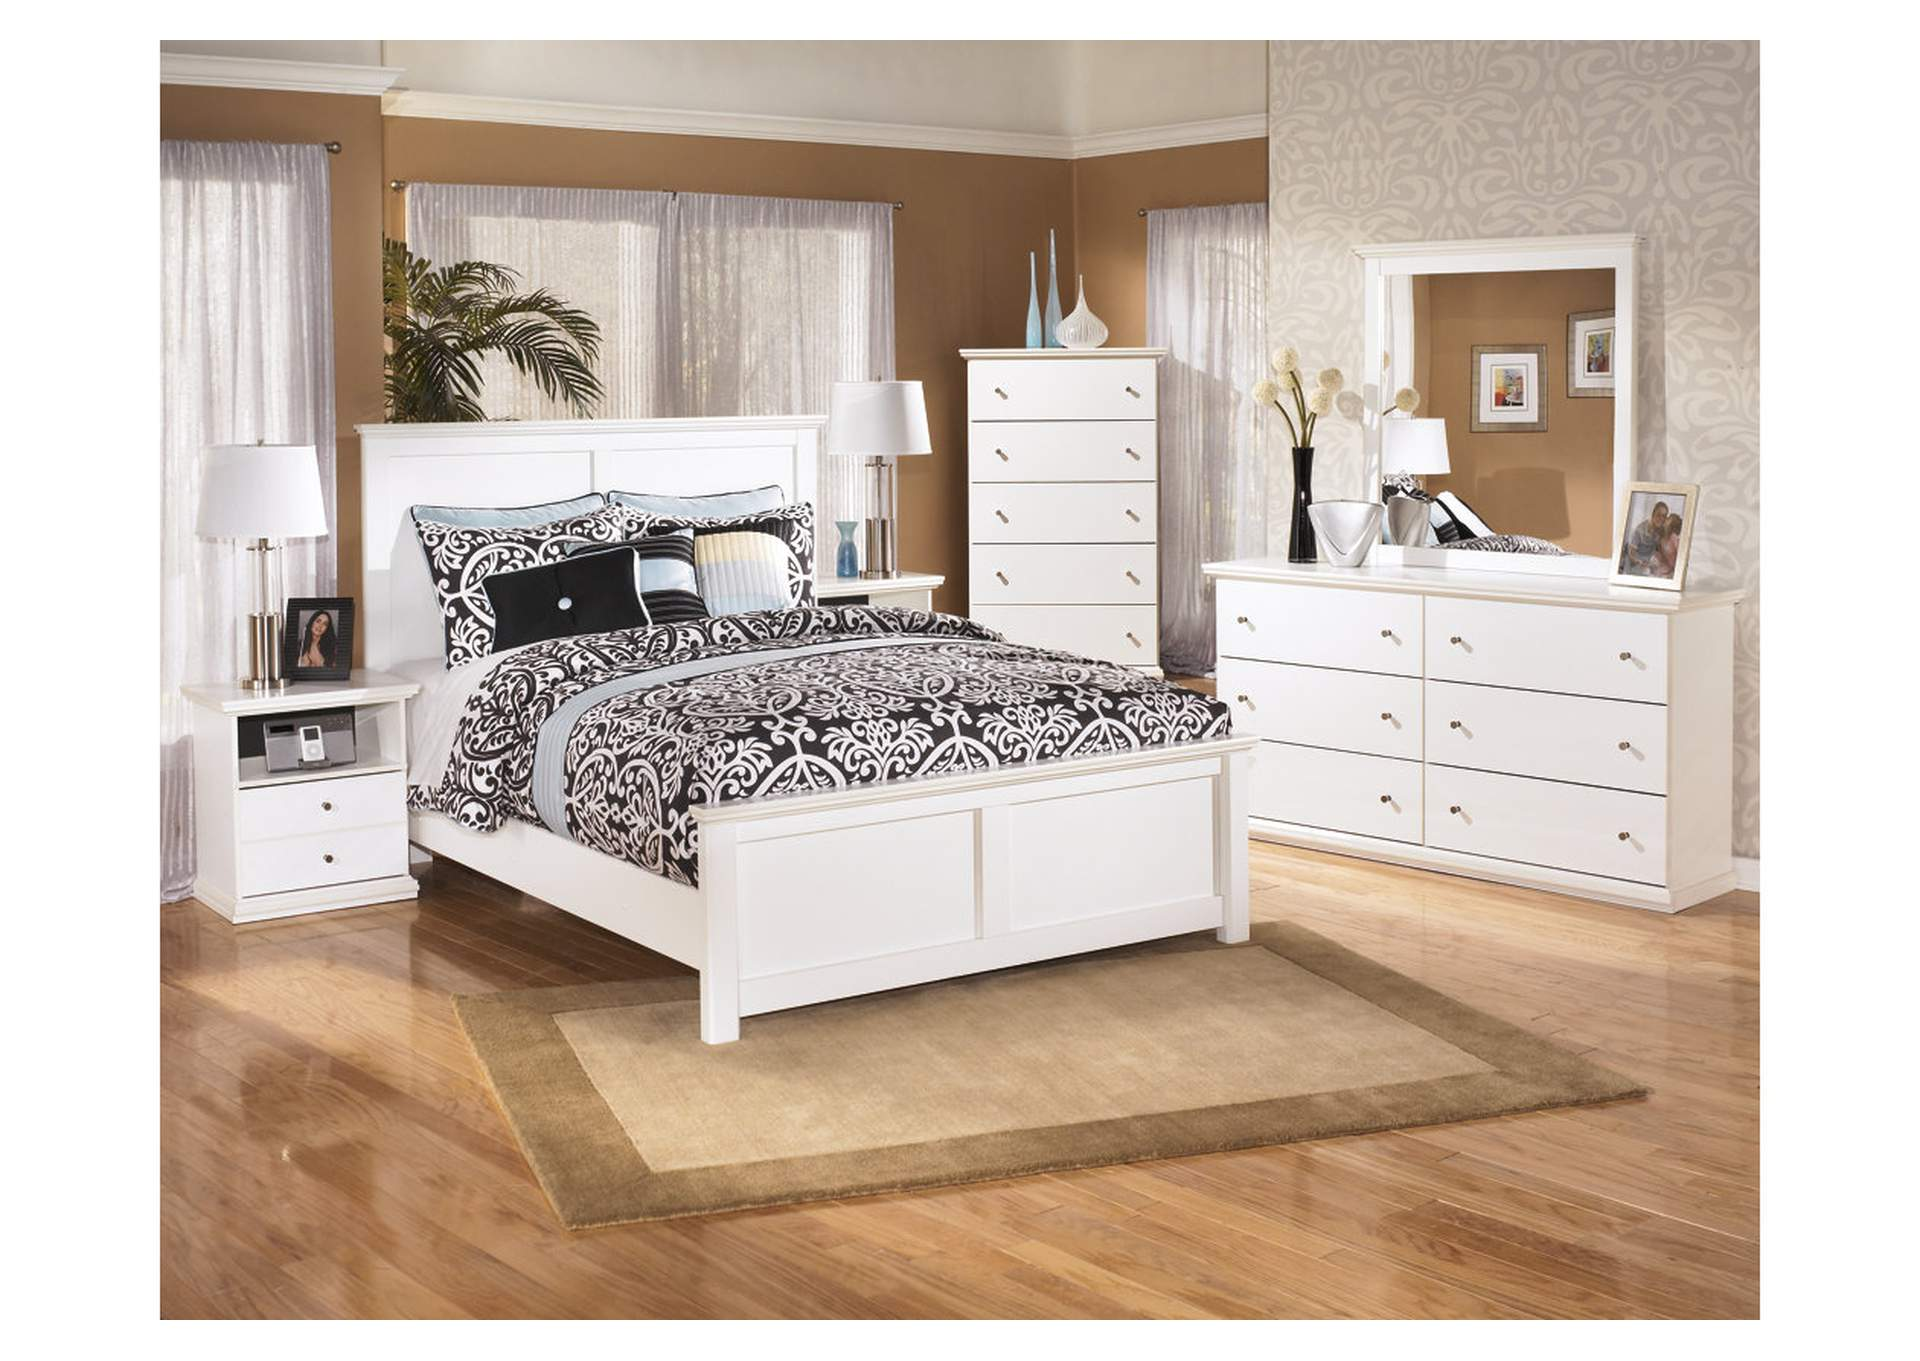 Bostwick Shoals Queen Panel Bed w/Dresser, Mirror & Nightstand,Signature Design By Ashley